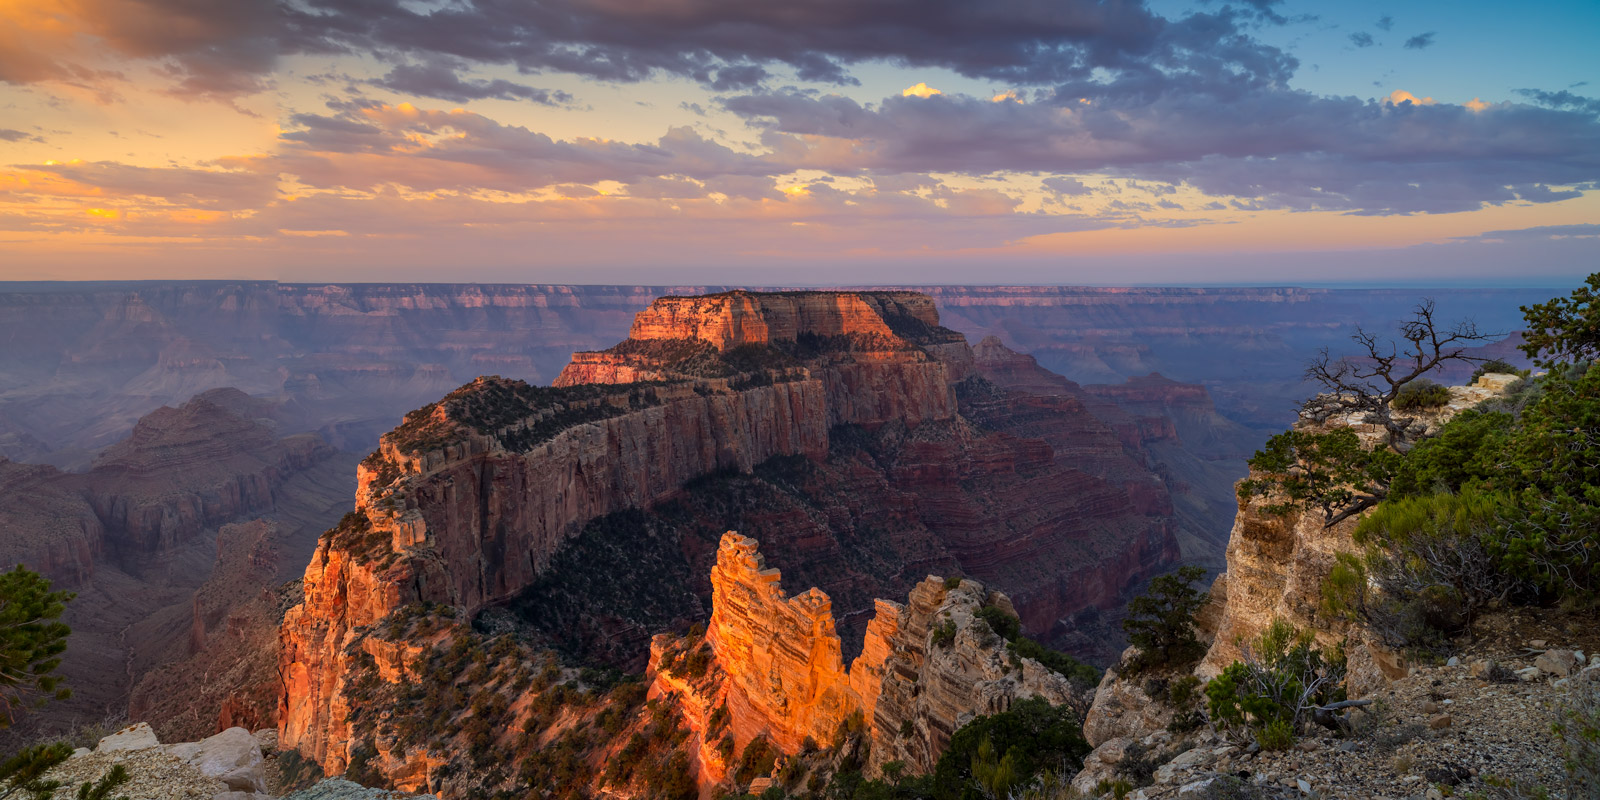 A Limited Edition, Fine Art photograph of sunrise lighting up the canyon at Cape Royal at the North Rim in Grand Canyon National...